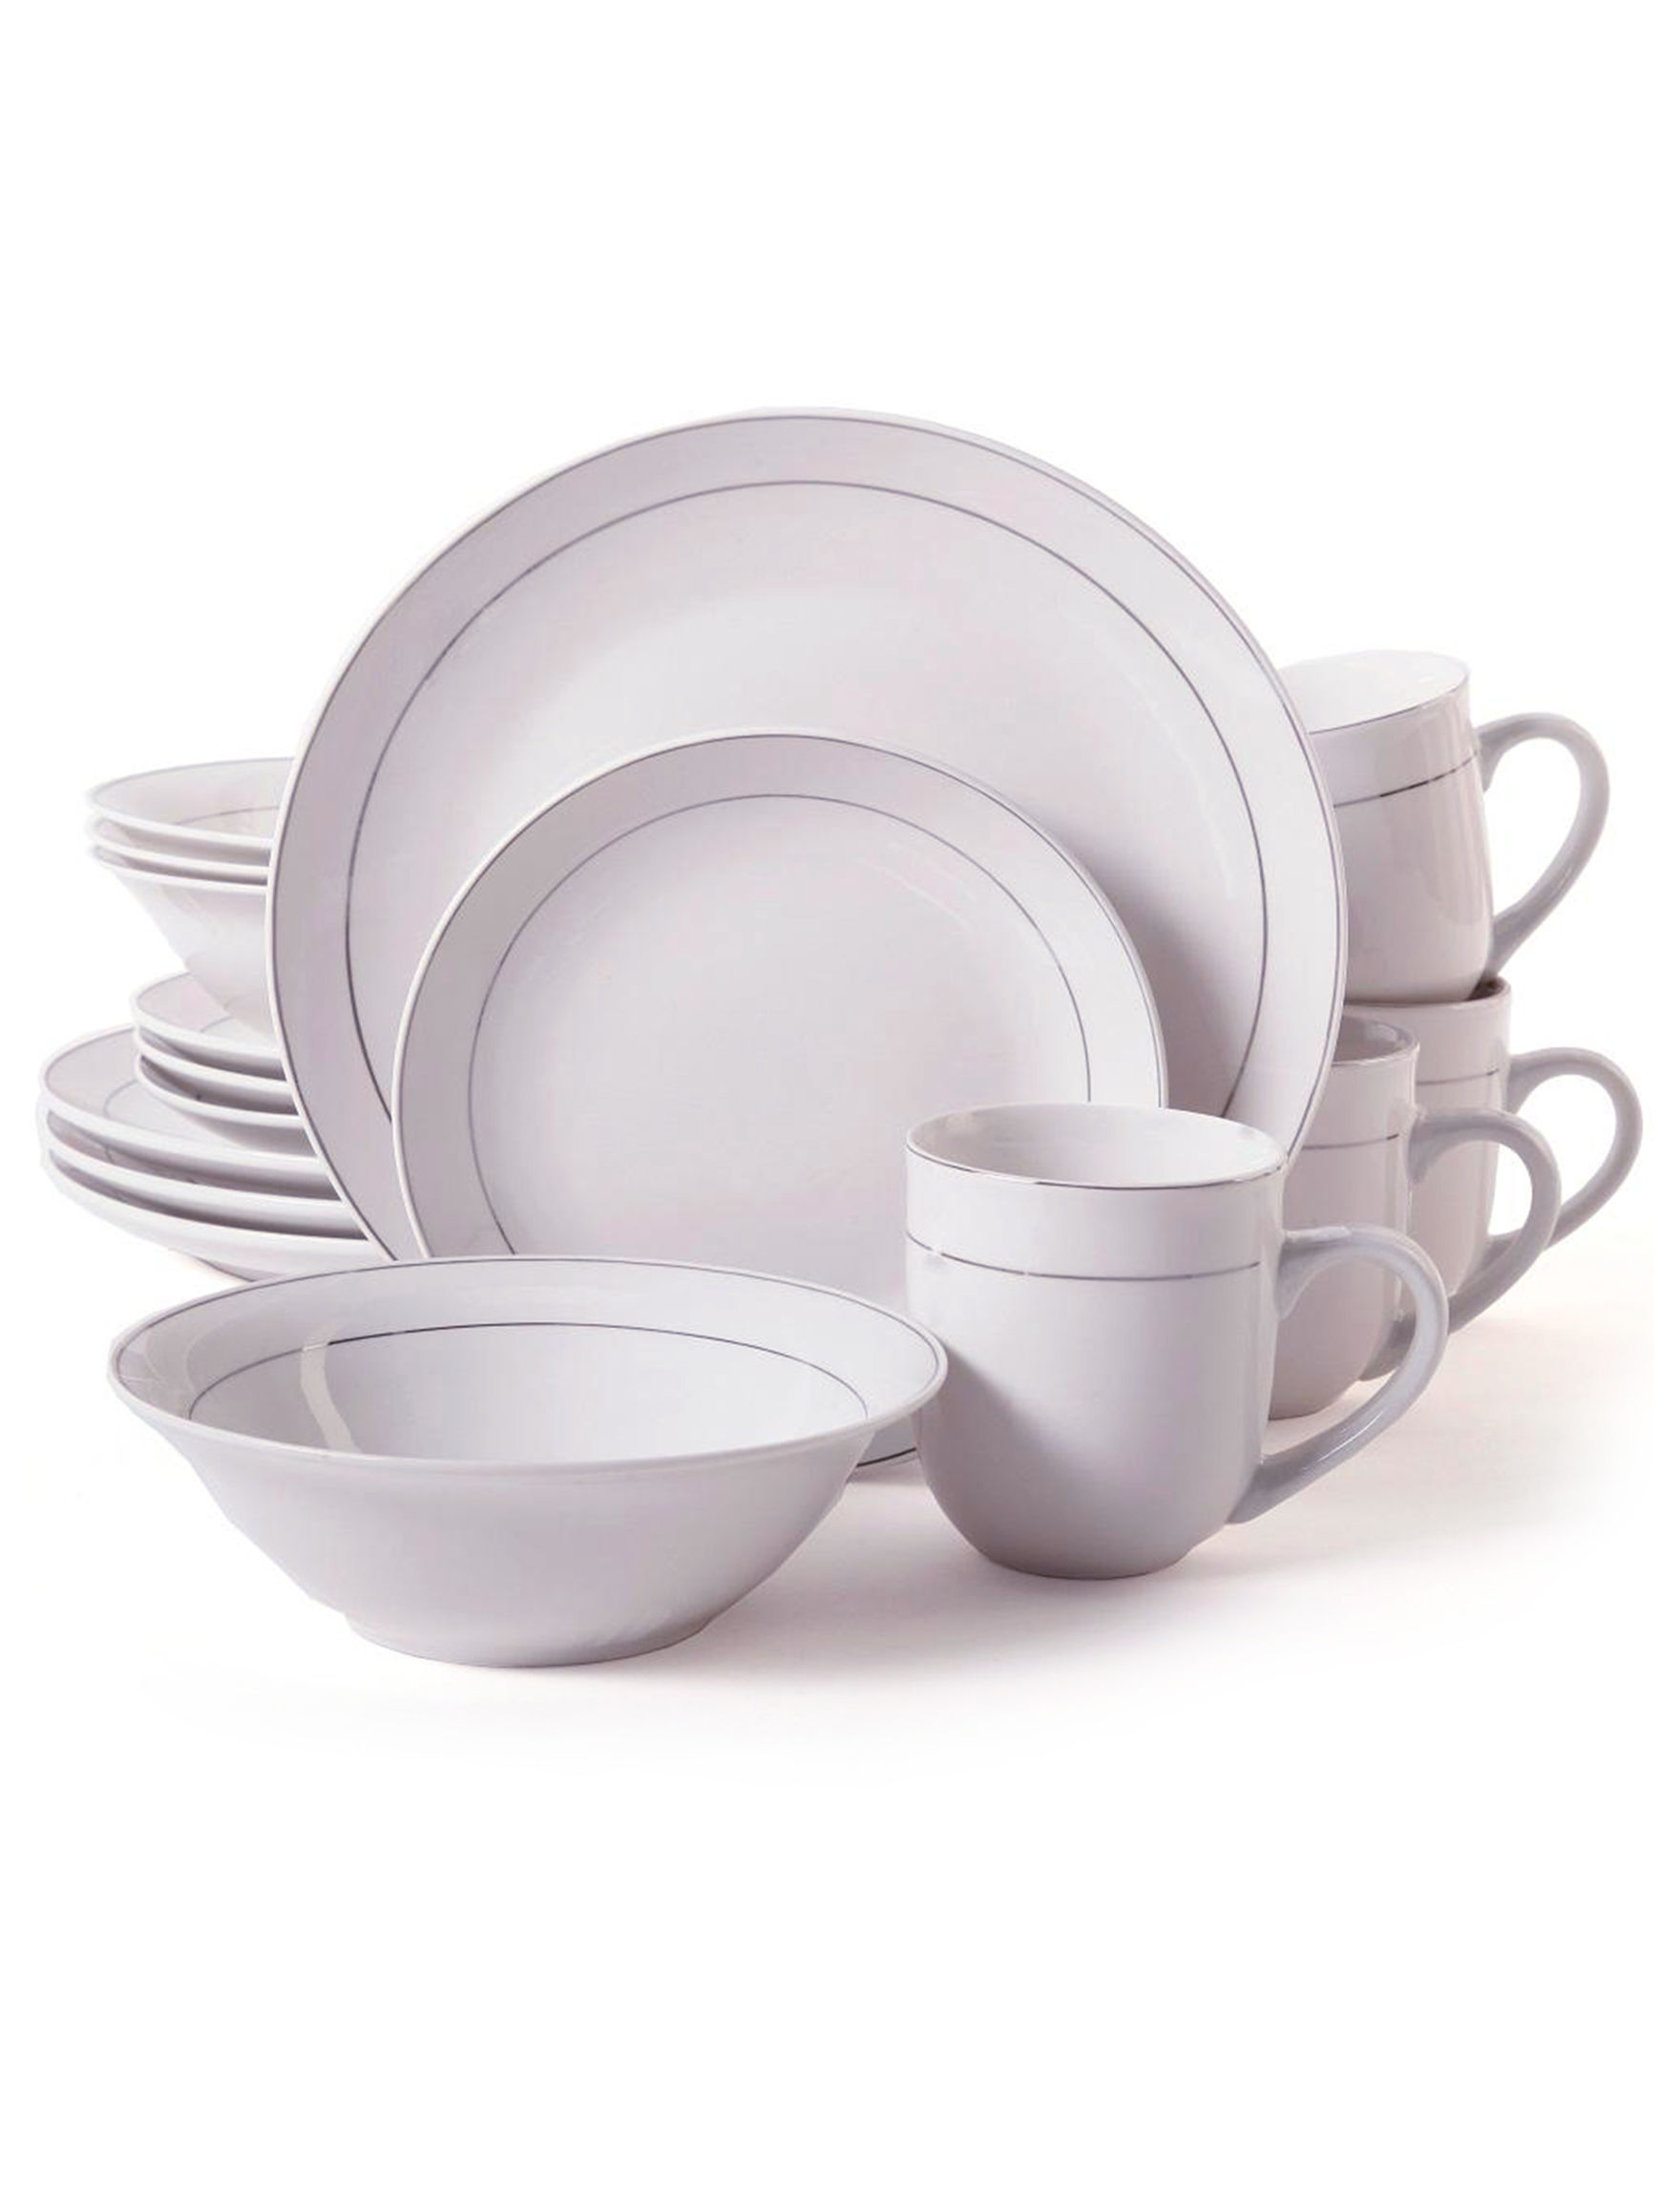 Gibson 16-pc. Platinum Moon Dinnerware Set  sc 1 st  Stage Stores & Gibson 16-pc. Platinum Moon Dinnerware Set | Stage Stores